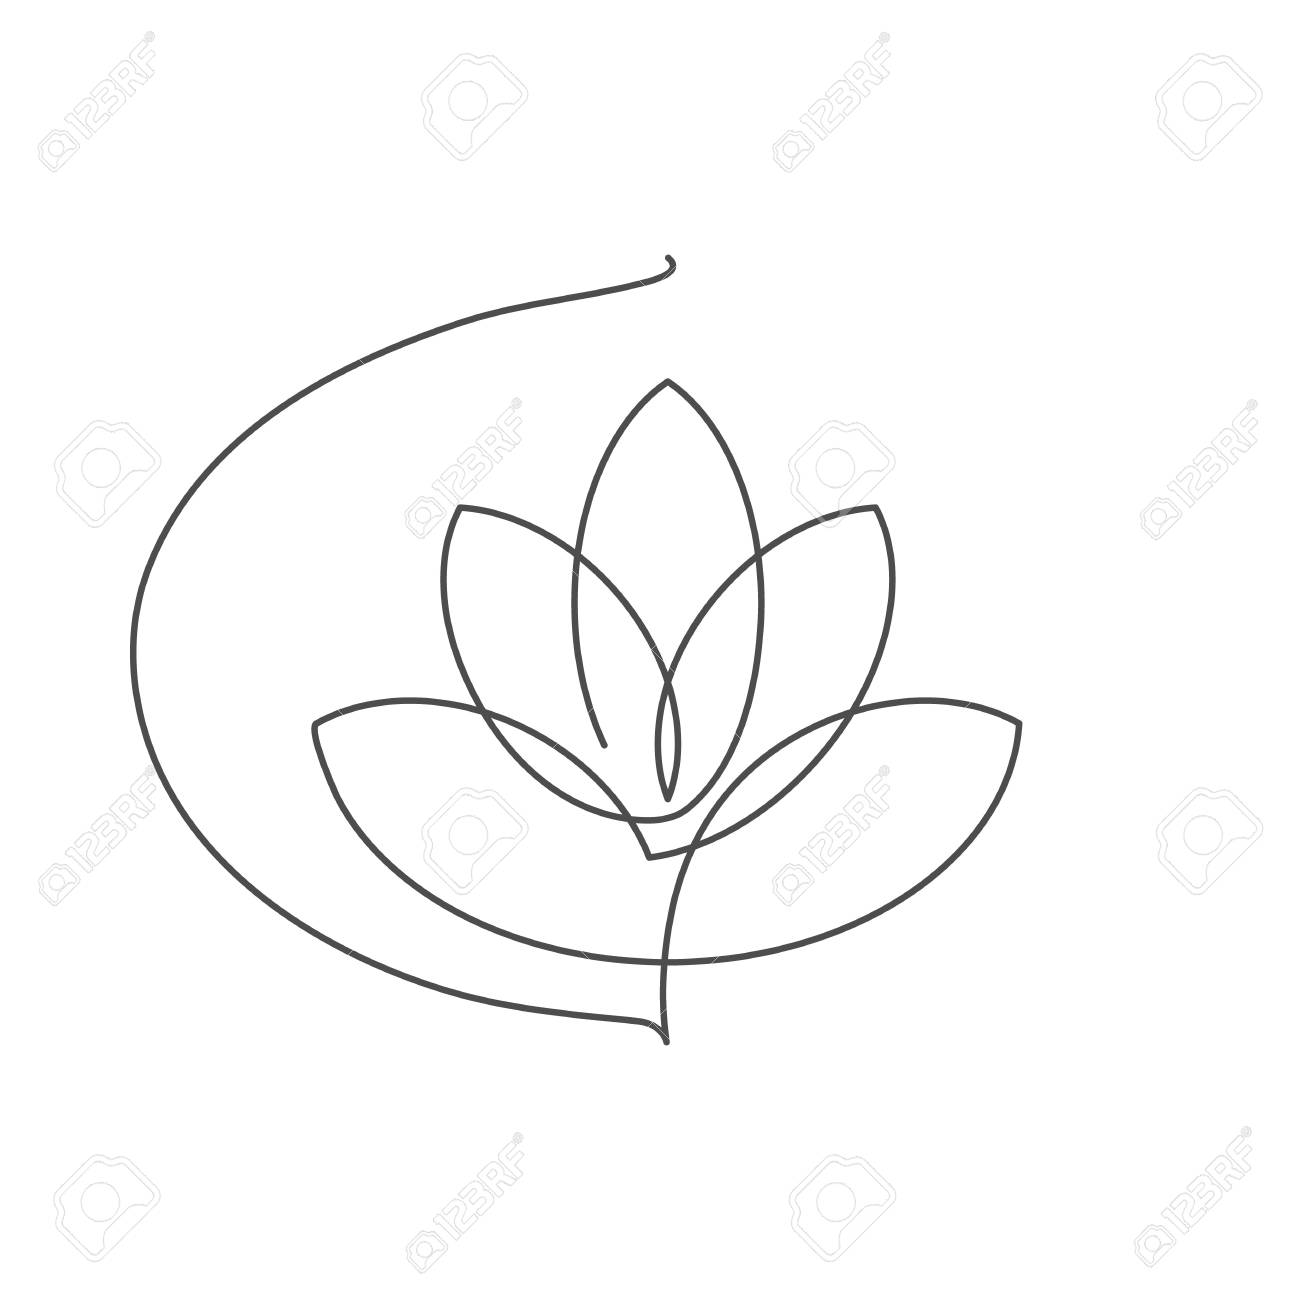 Flower lotus continuous line vector illustration with editable stroke - single line drawing of beautiful water lily for floral design or logo isolated on white background. - 109077683